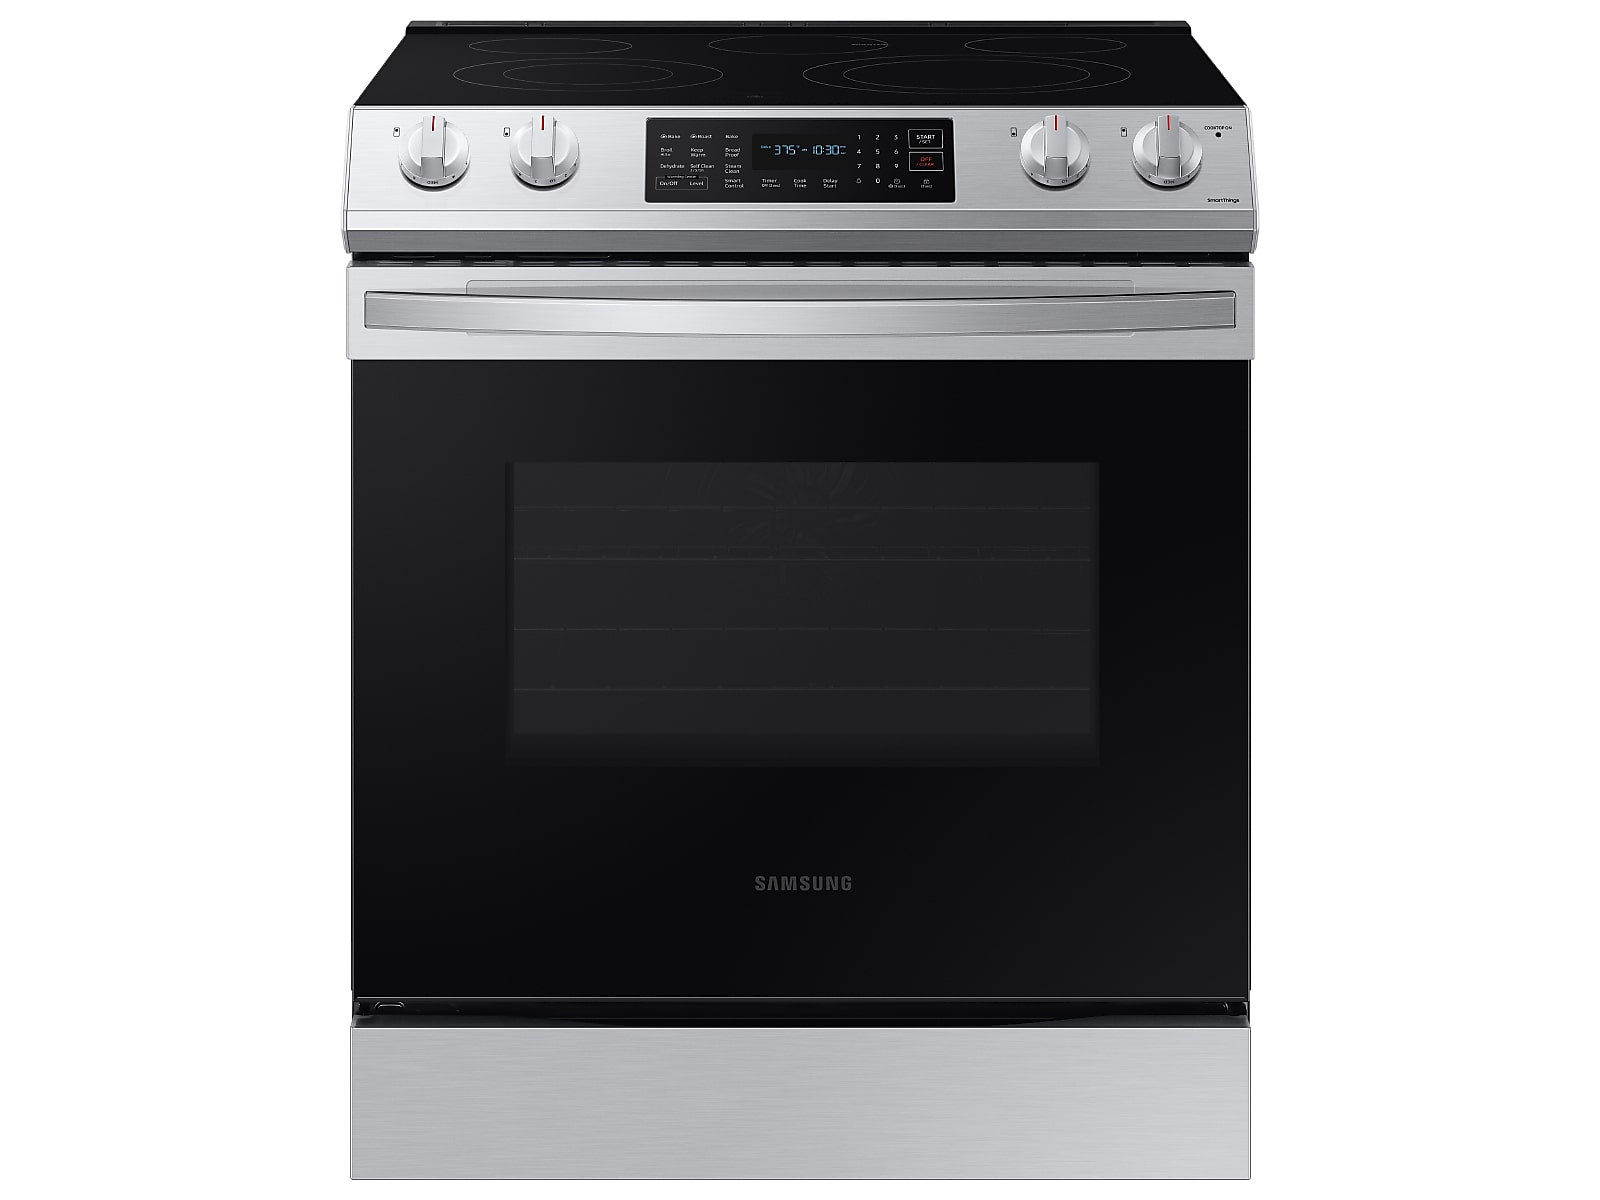 Samsung 6.3 cu ft. Smart Slide-in Electric Range with Convection in Silver(NE63T8311SS/AA)